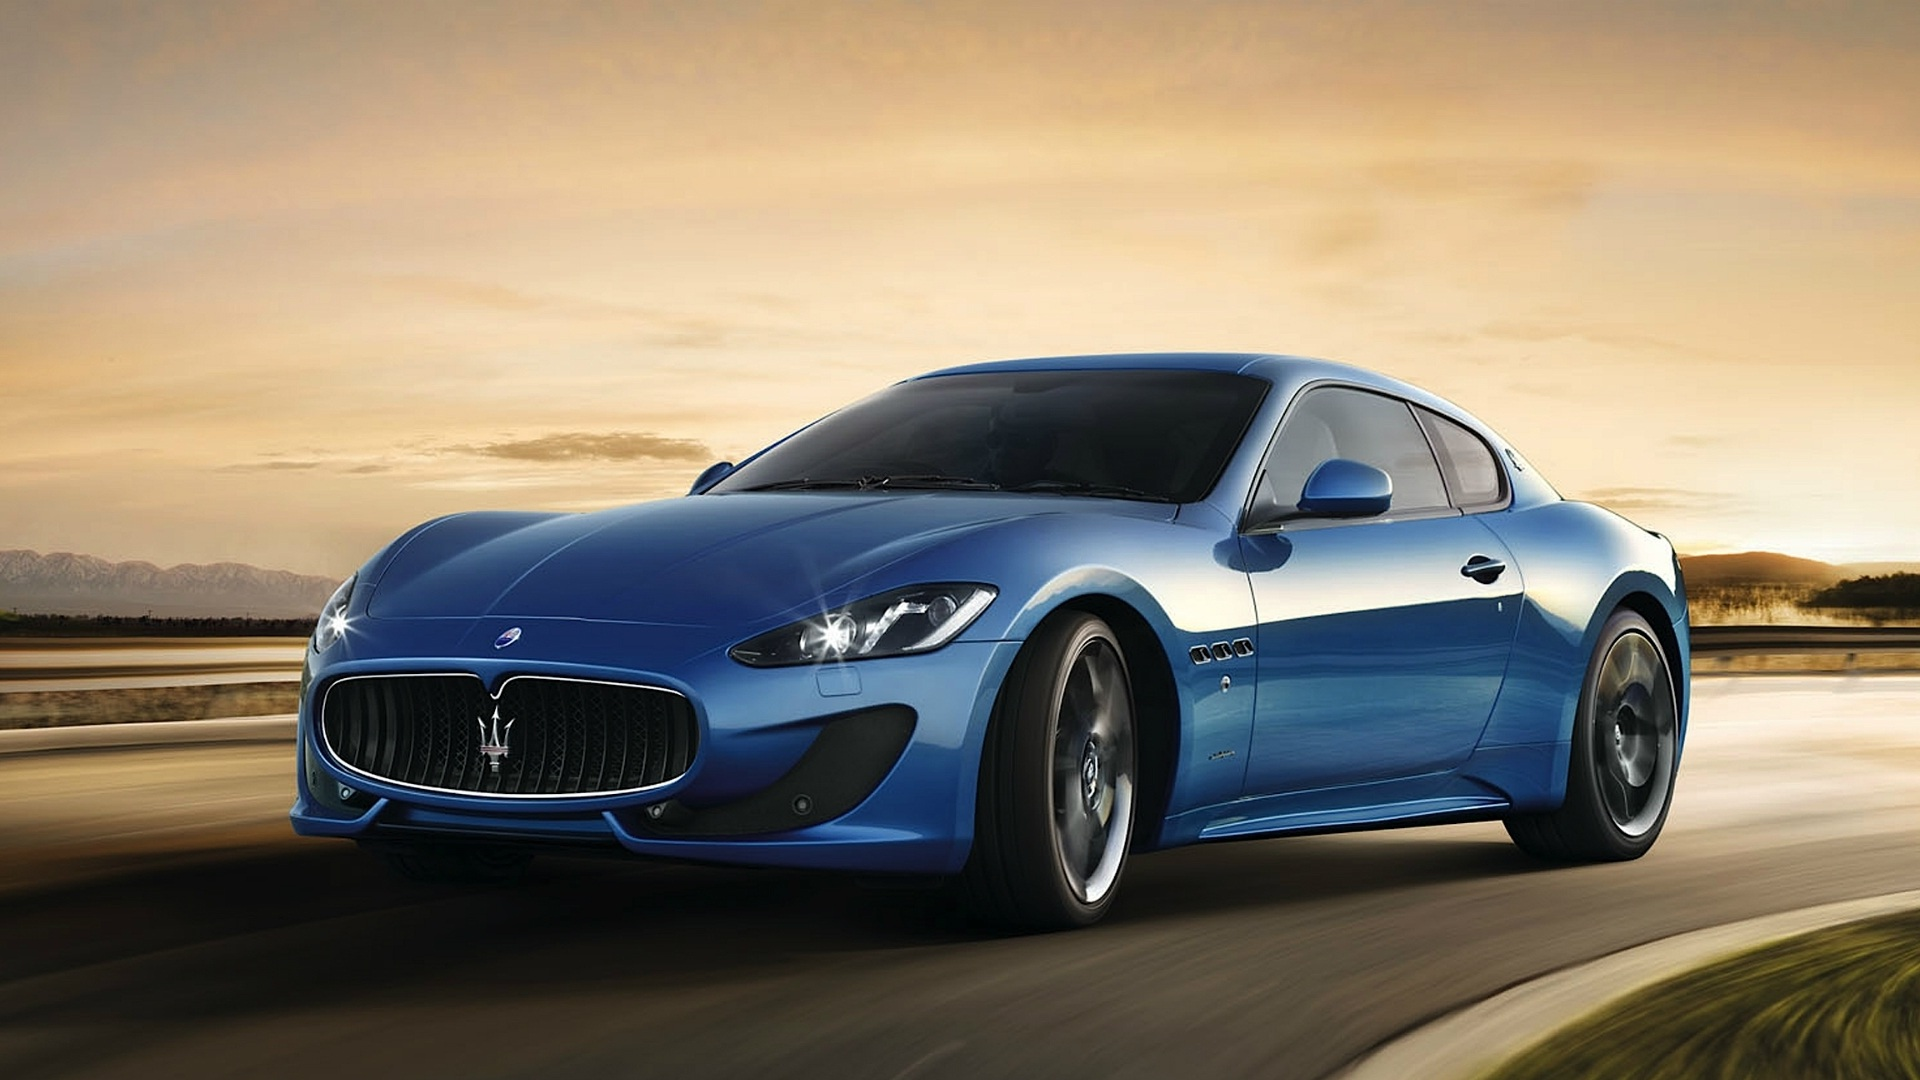 Car Wallpaper / Maserati Wallpapers Download HD Wallpapers and 1920x1080